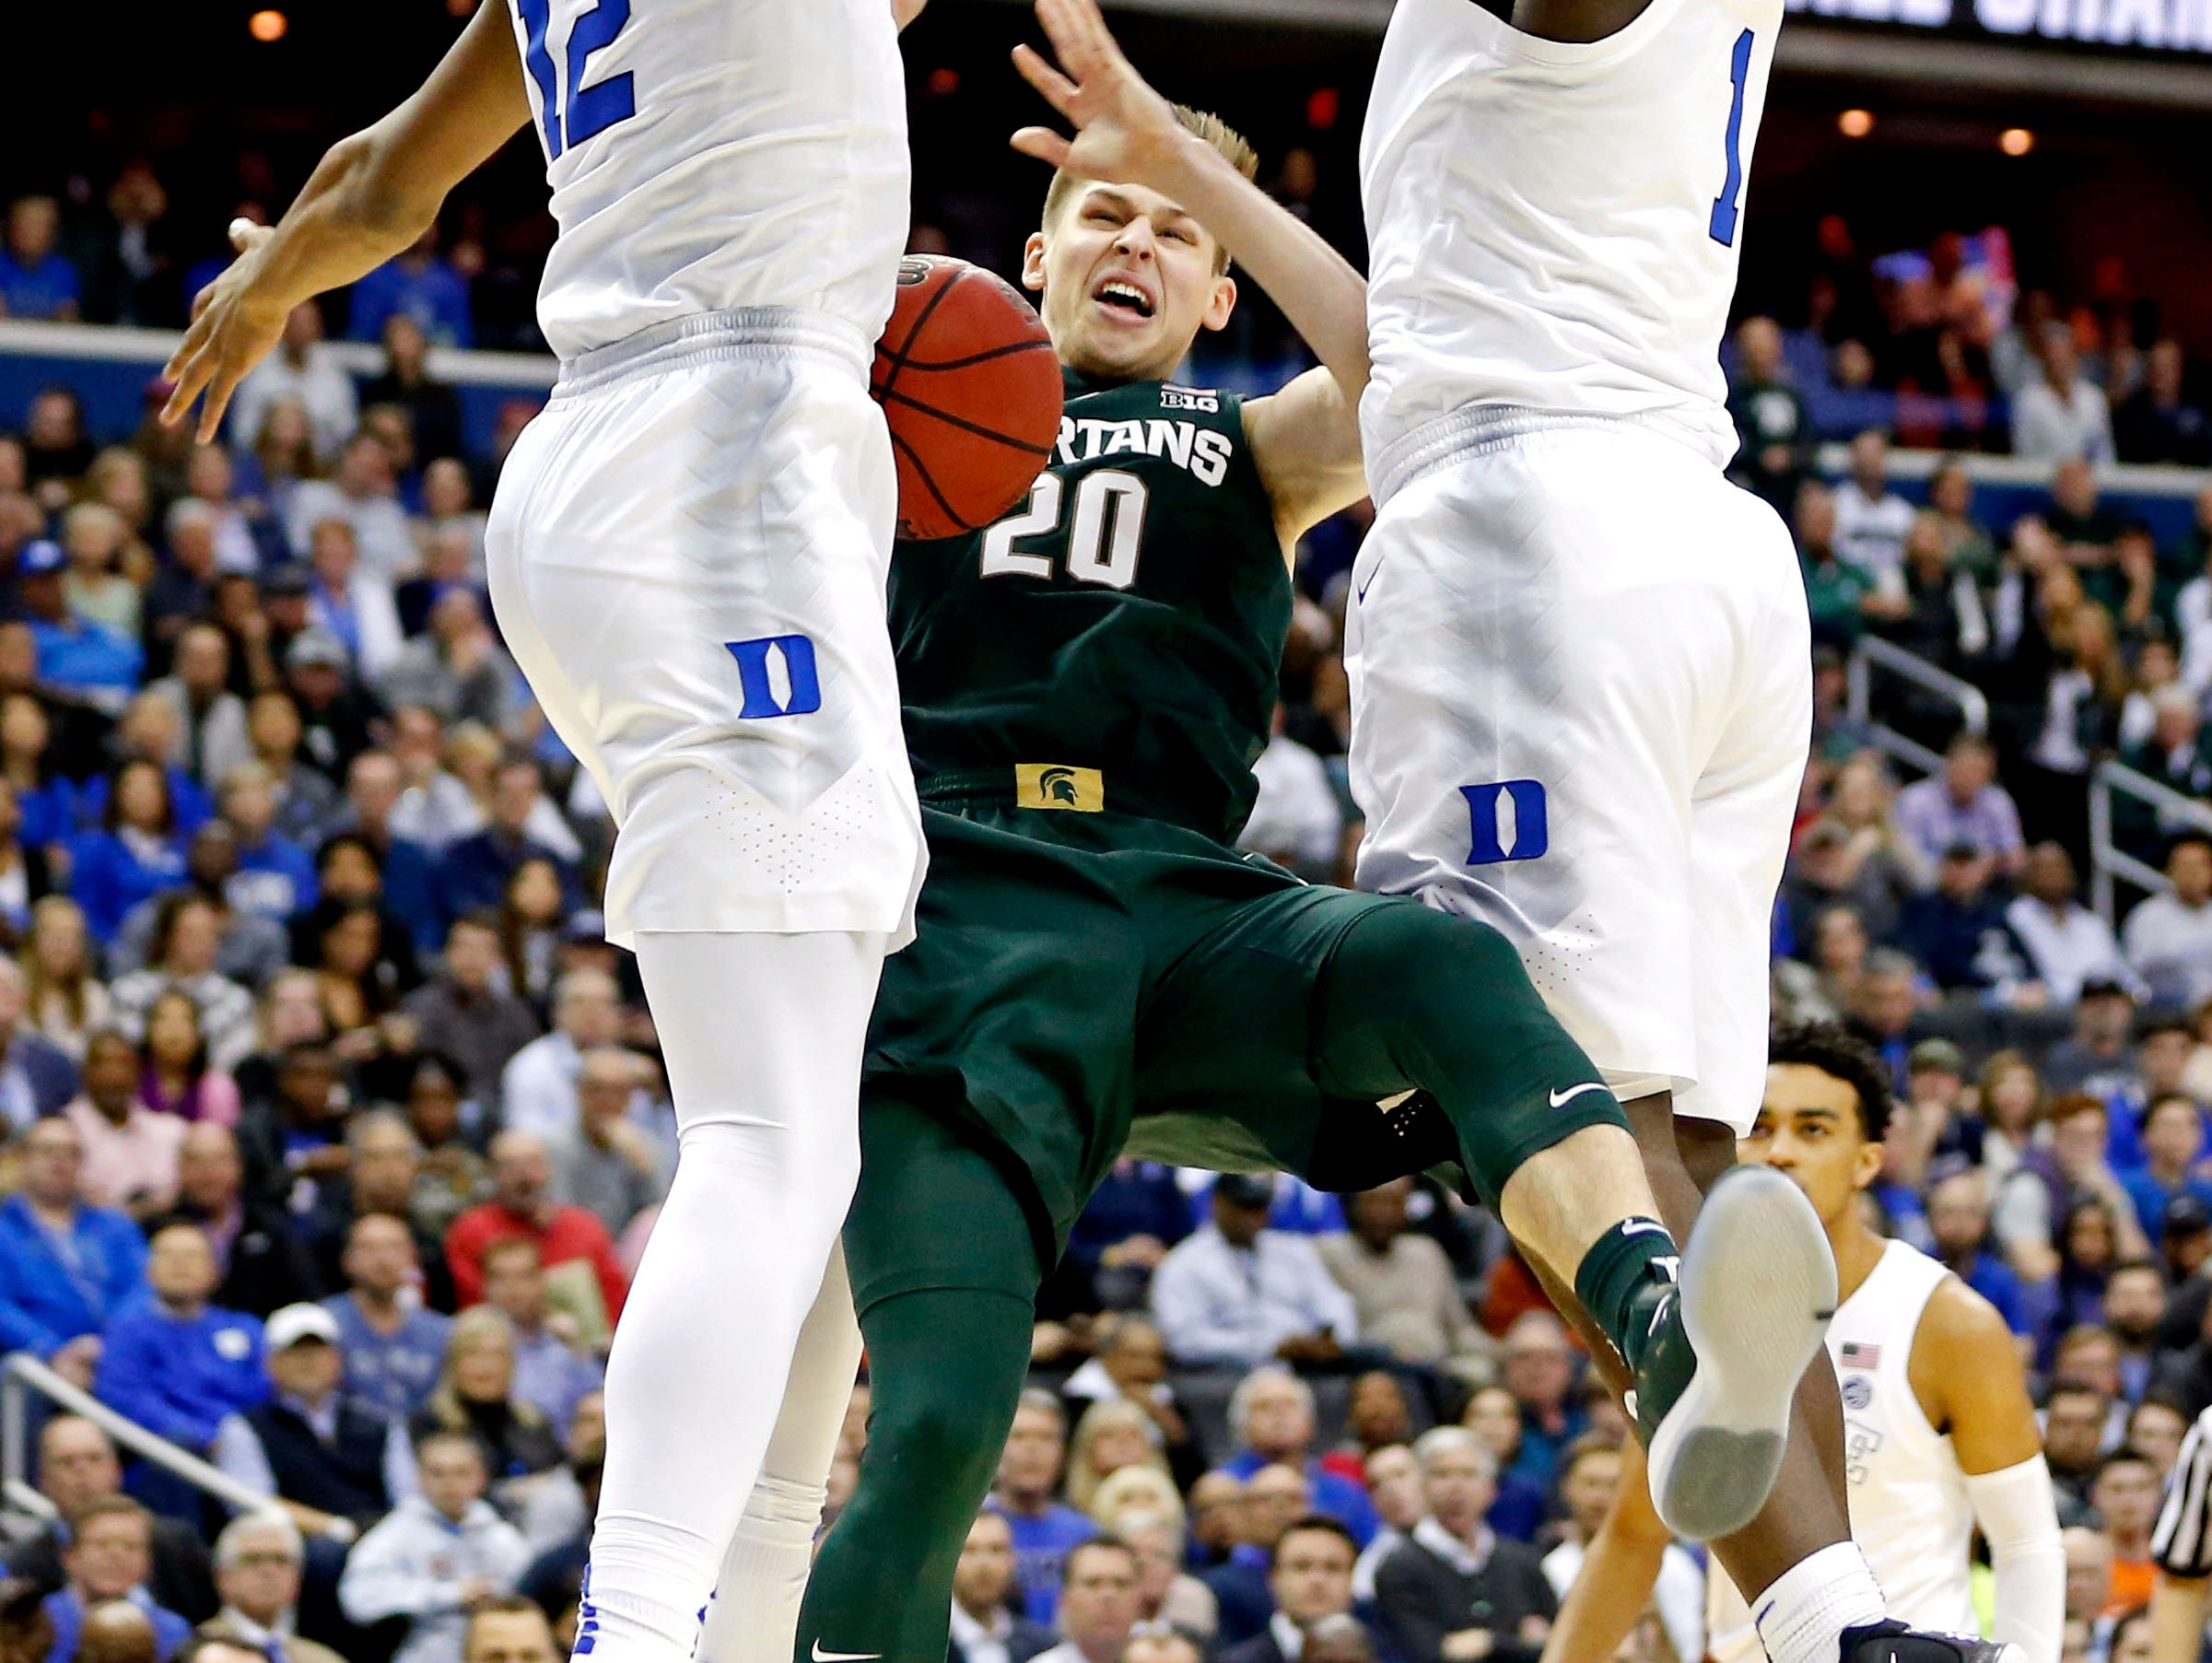 Mar 31, 2019; Washington, DC, USA; Michigan State Spartans guard Matt McQuaid (20) drives to the basket against Duke Blue Devils forward Zion Williamson (1) during the first half in the championship game of the east regional of the 2019 NCAA Tournament at Capital One Arena. Mandatory Credit: Amber Searls-USA TODAY Sports